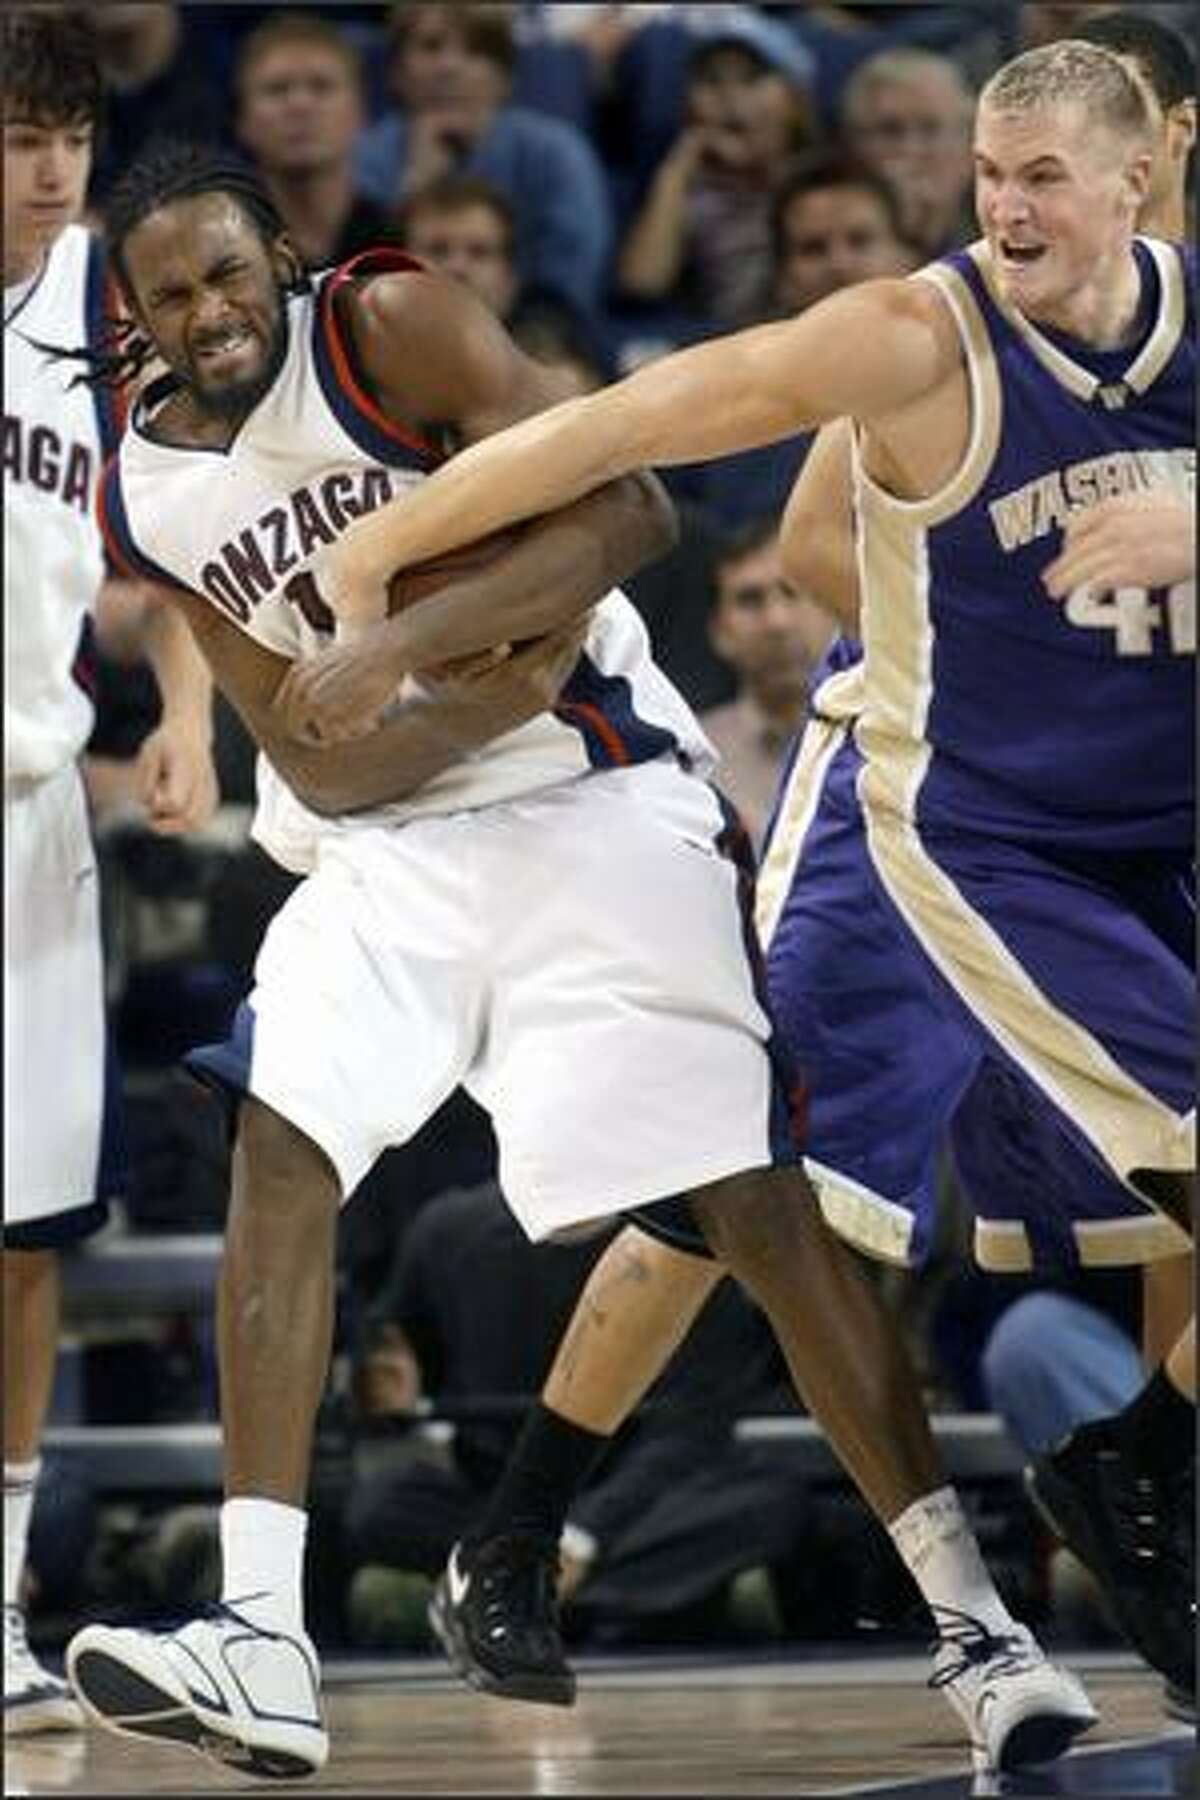 Gonzaga forward Ronny Turiaf and Washington's Mike Jensen wrestle for a rebound in the second half.